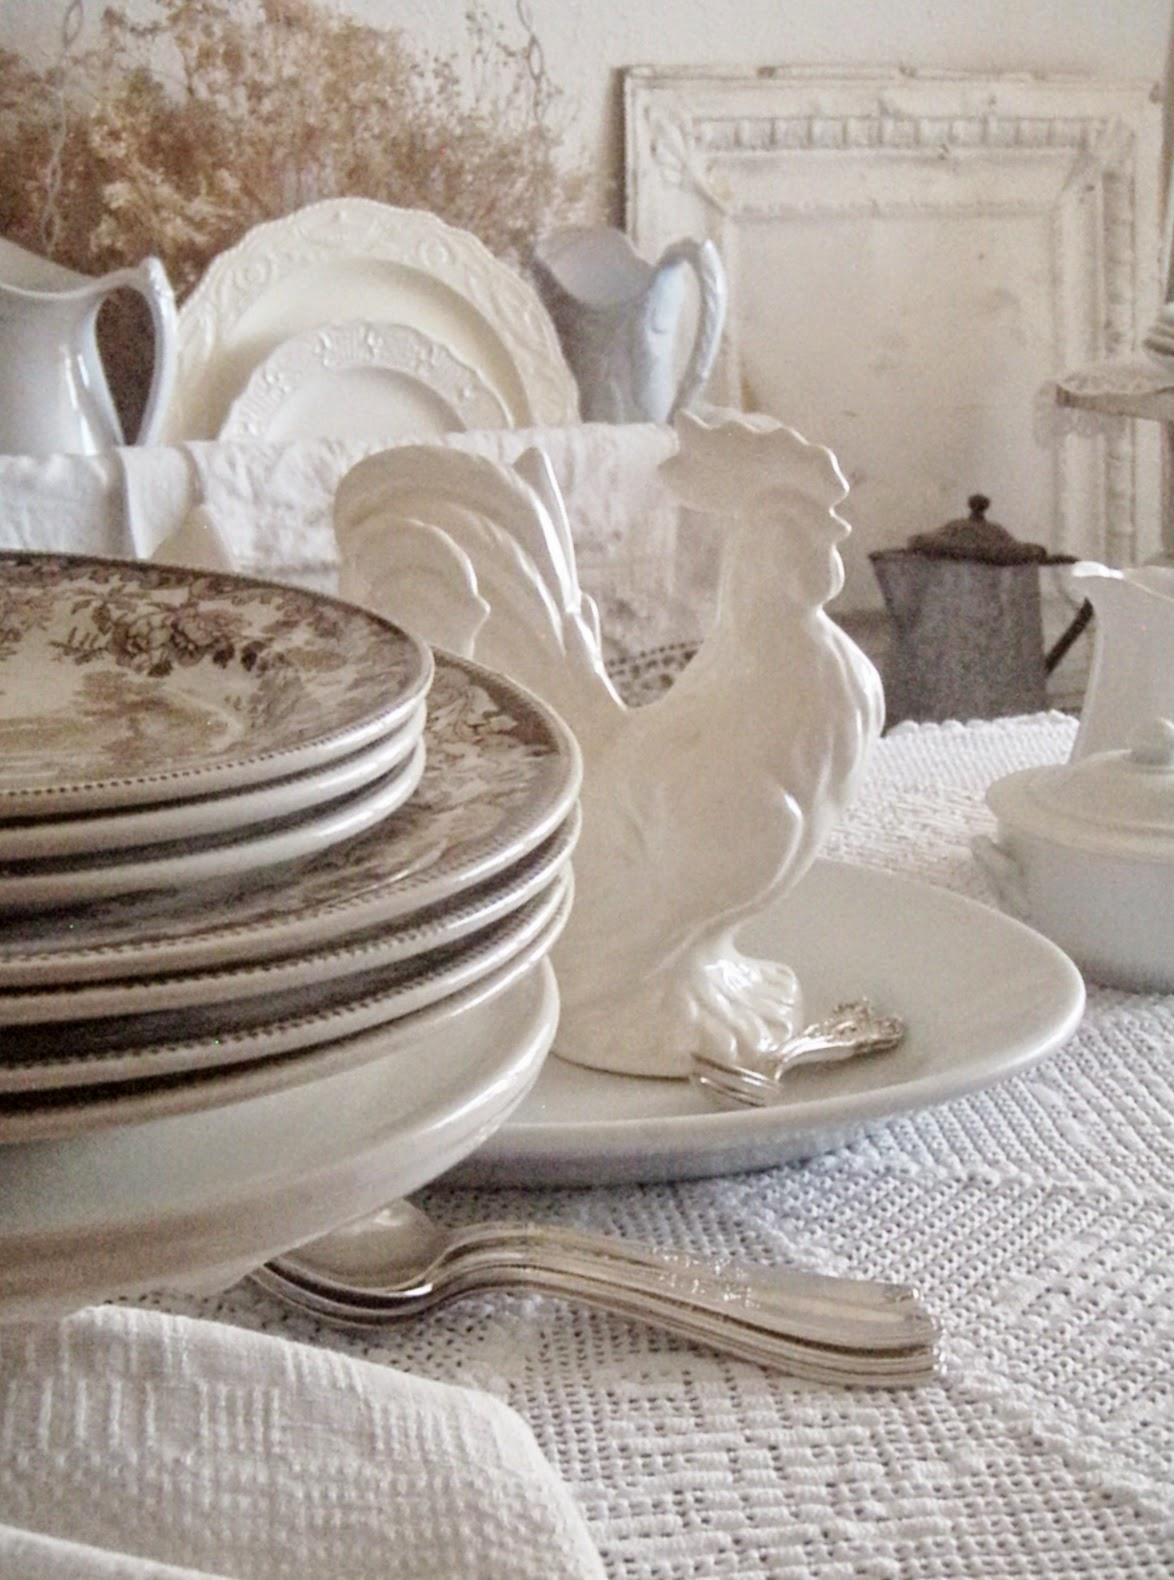 Setting A Cozy French Country Table & Cabin \u0026 Cottage : Setting A Cozy French Country Table